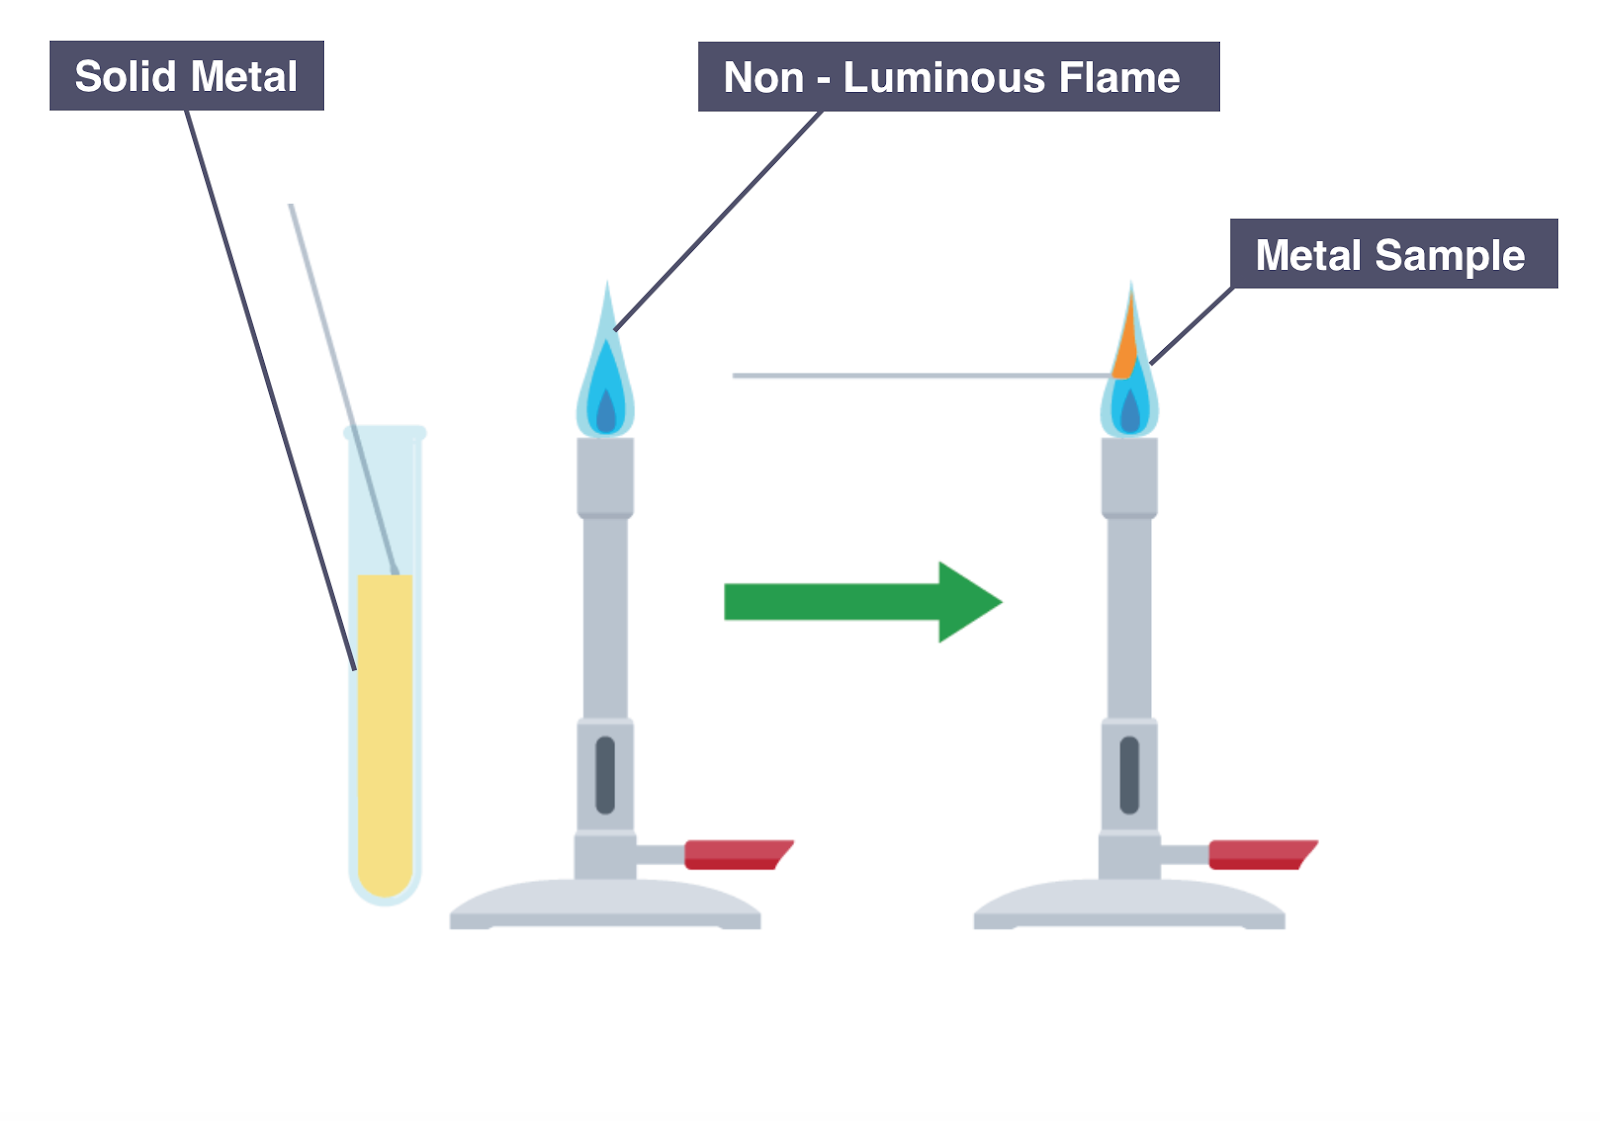 Igcse chemistry 2017 245 describe how to carry out a flame test diagram showing the flame test of metal cations ccuart Choice Image